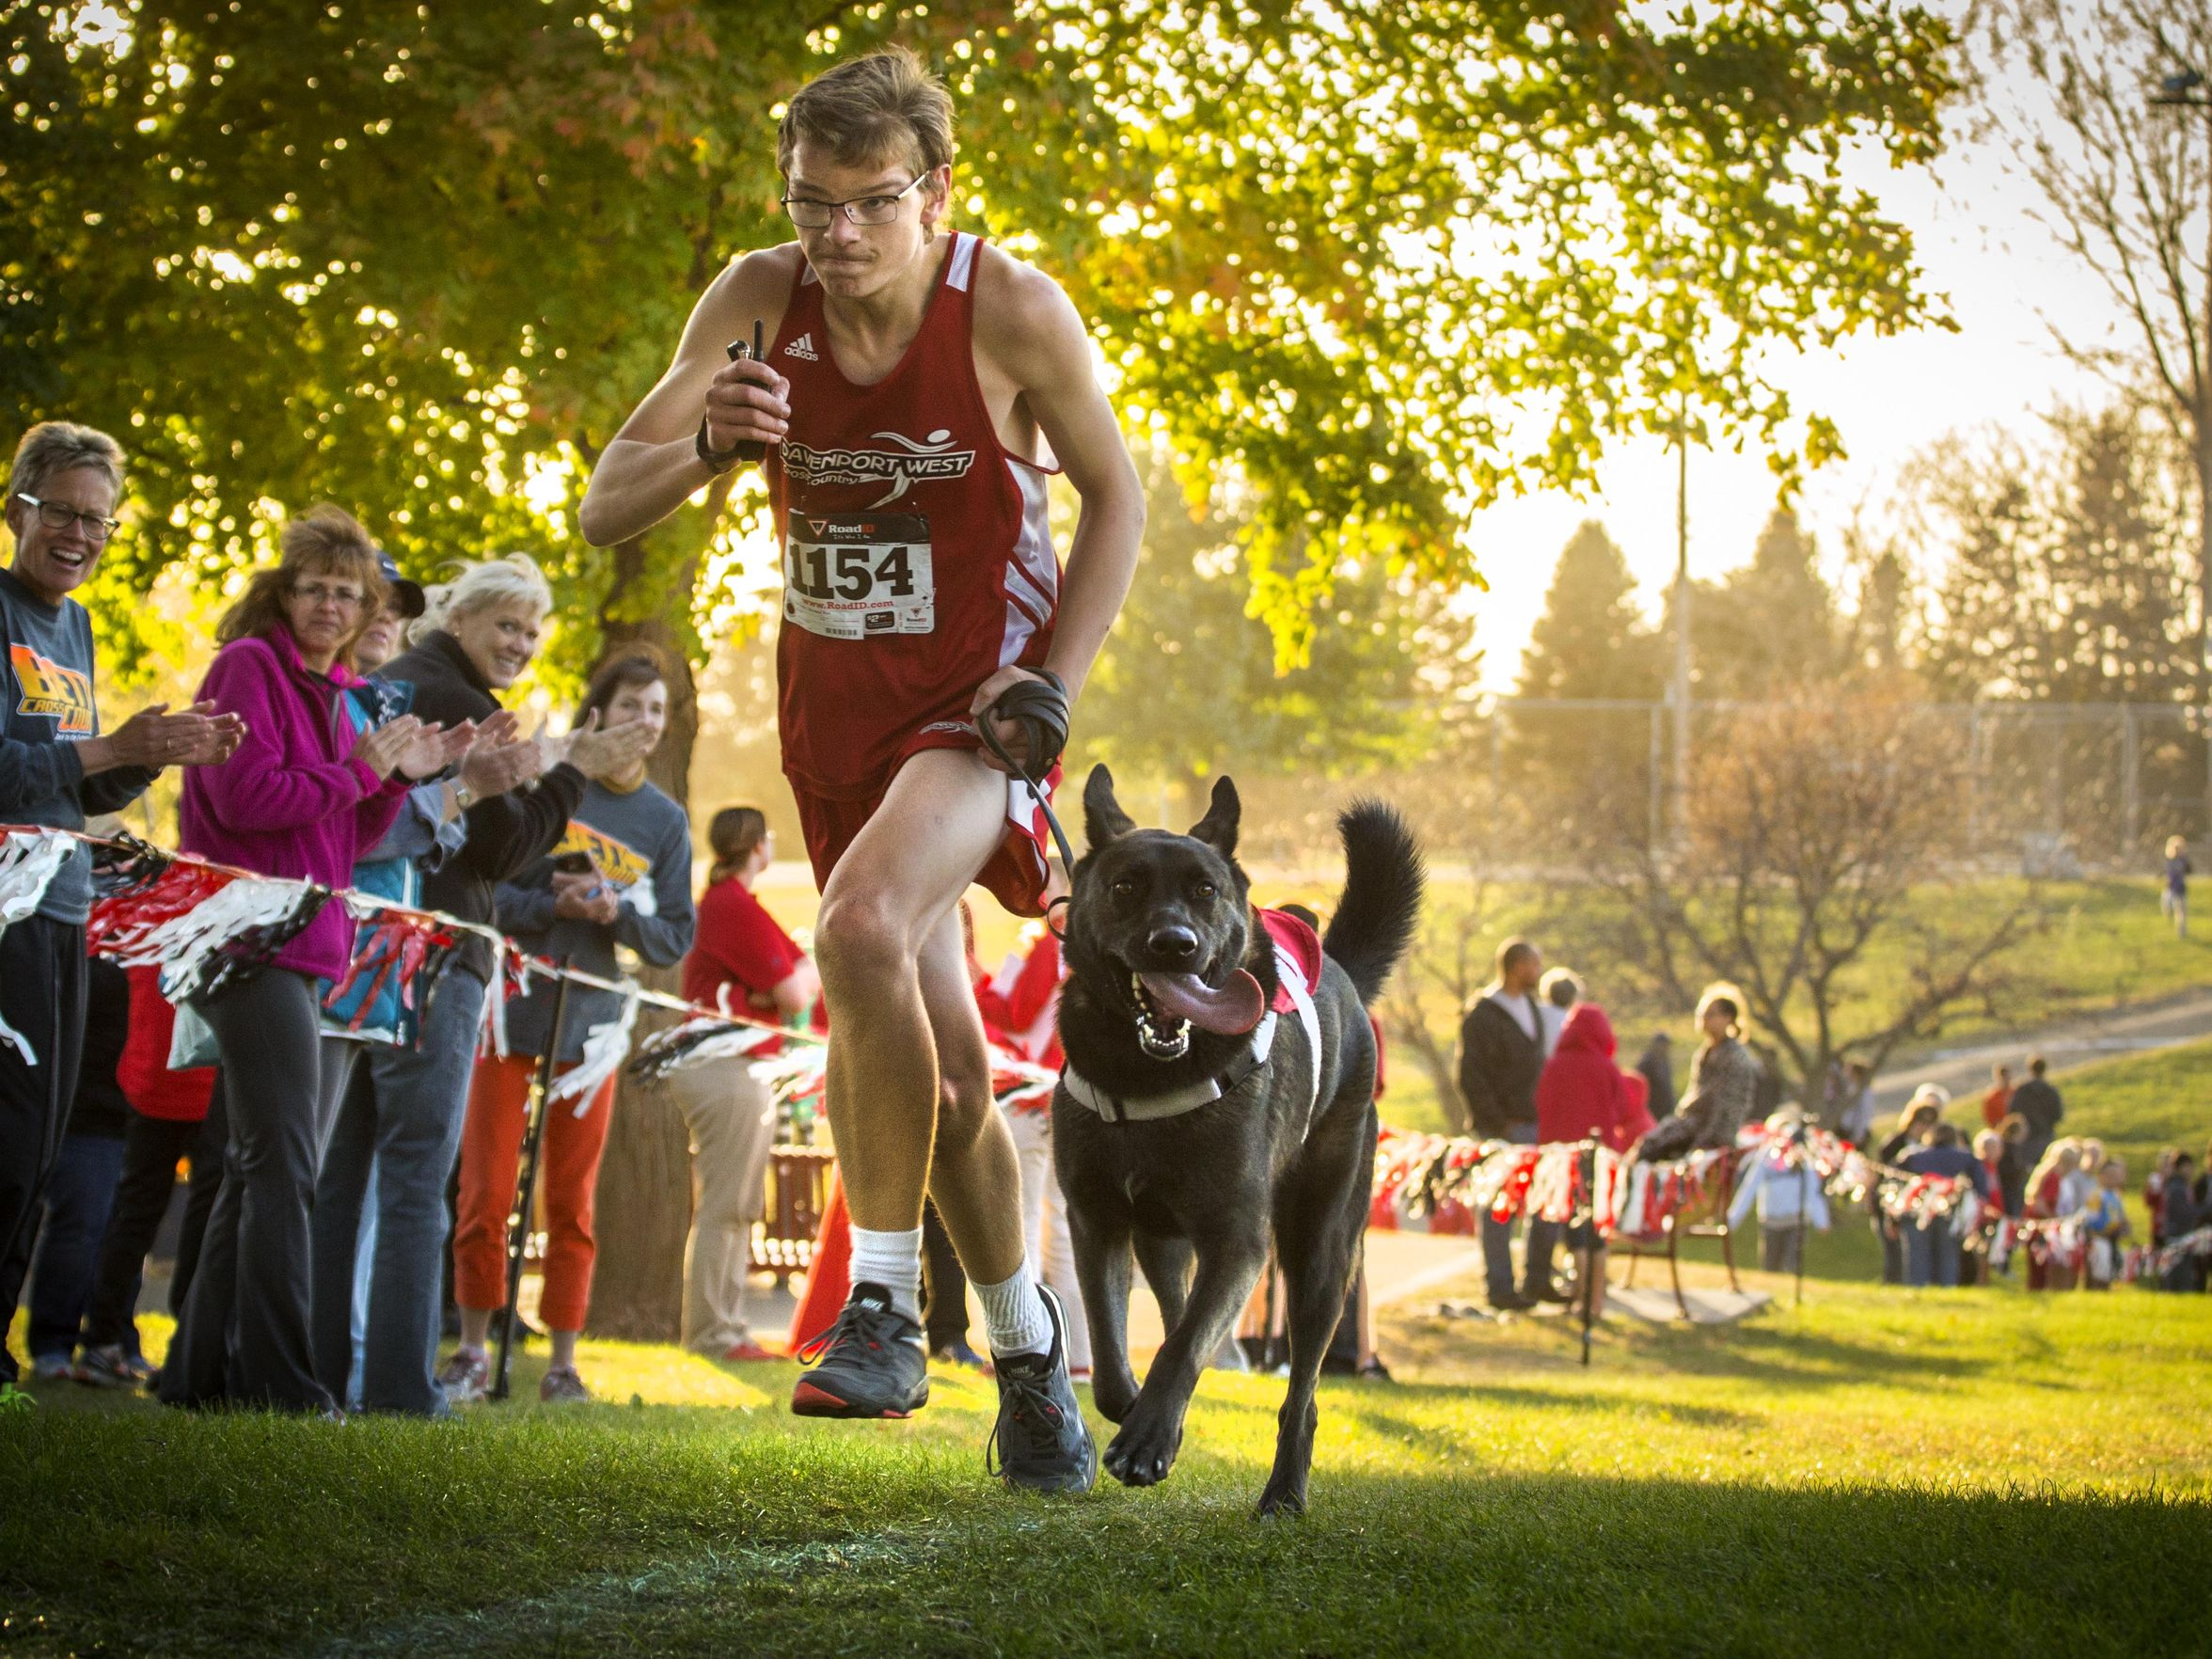 Davenport West's Tyler Gerdt and his German shepherd service dog Hugo nears the finish line during his JV race in Clinton, Iowa, Thursday Oct 15, 2015. Tyler was born with a brain injury, has had 15 surgeries and is autistic. The dog enables him to more effectively and safely run the races, and this has been his first season of running with Hugo. (Photo: Rodney White/The Register)